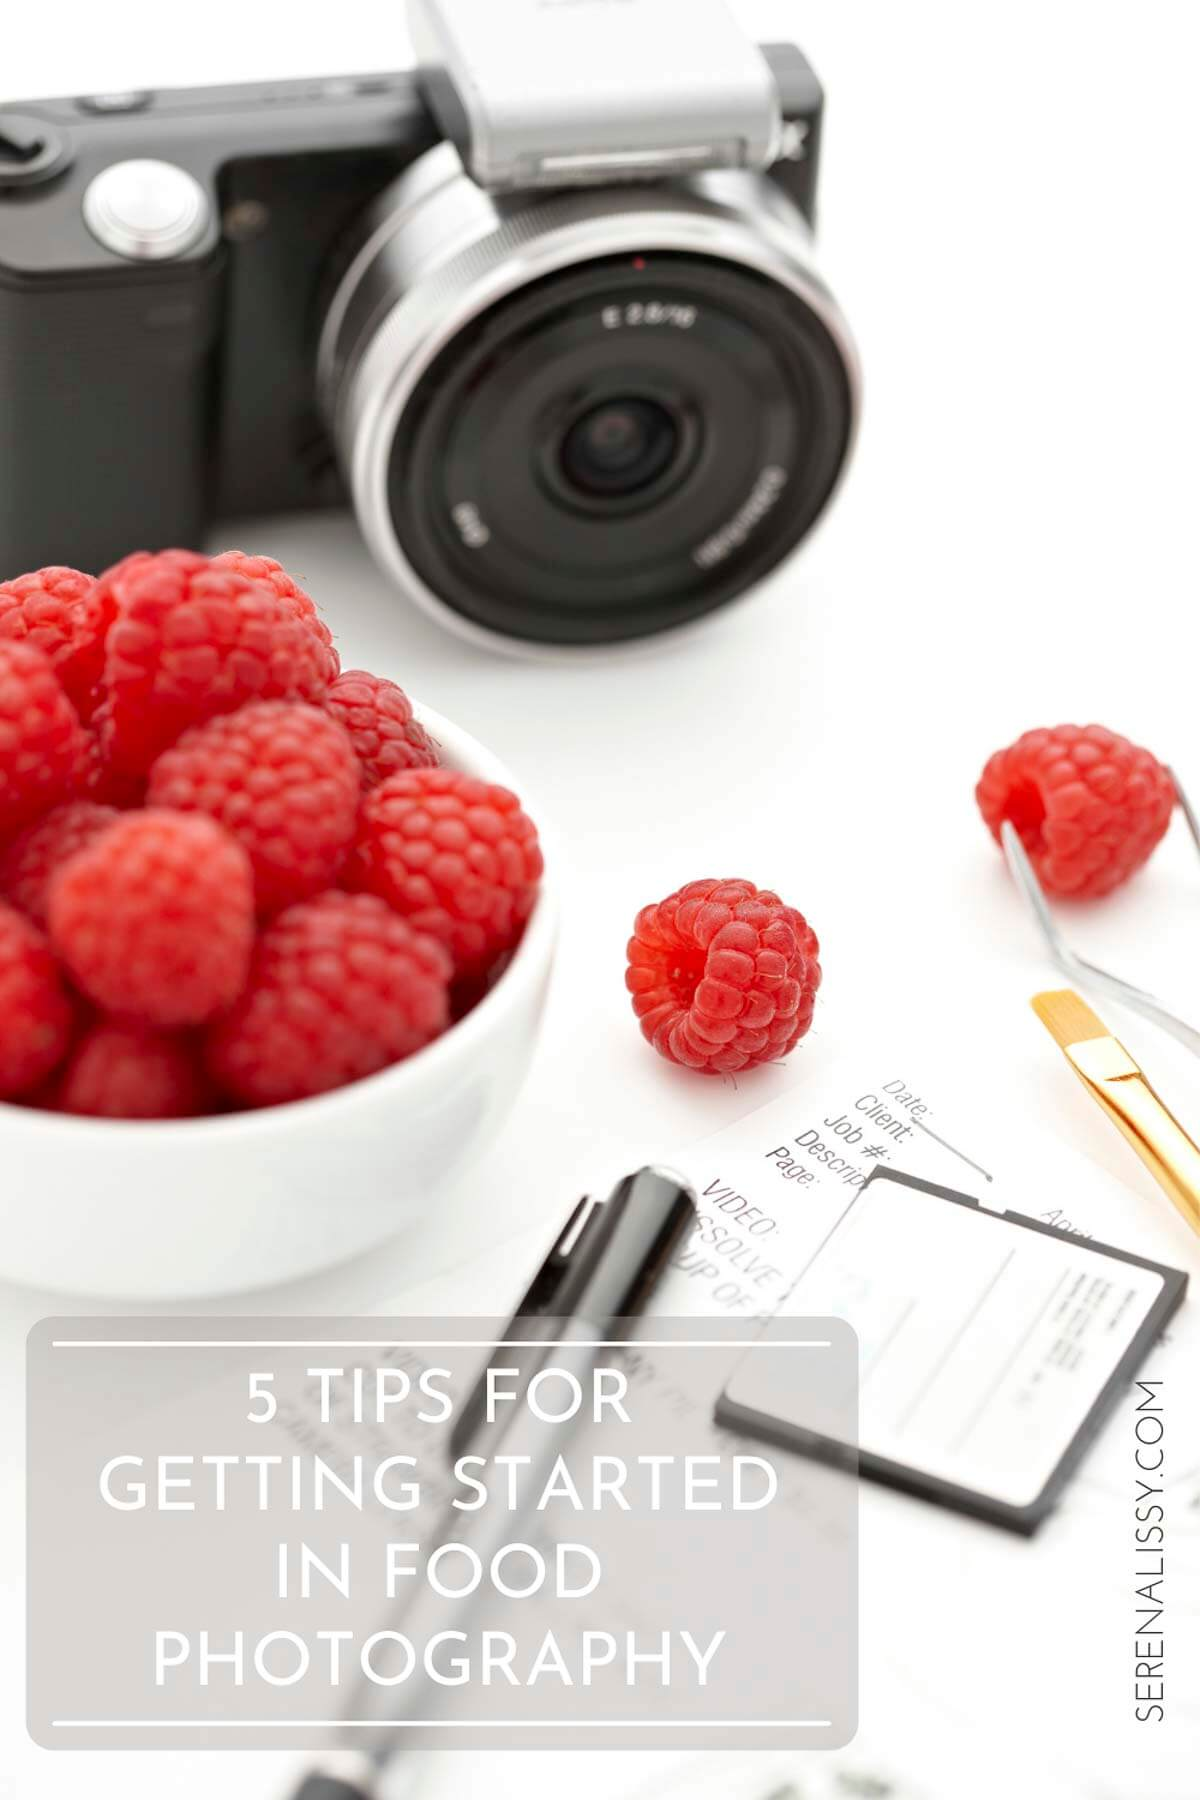 Raspberries and a camera on tabletop